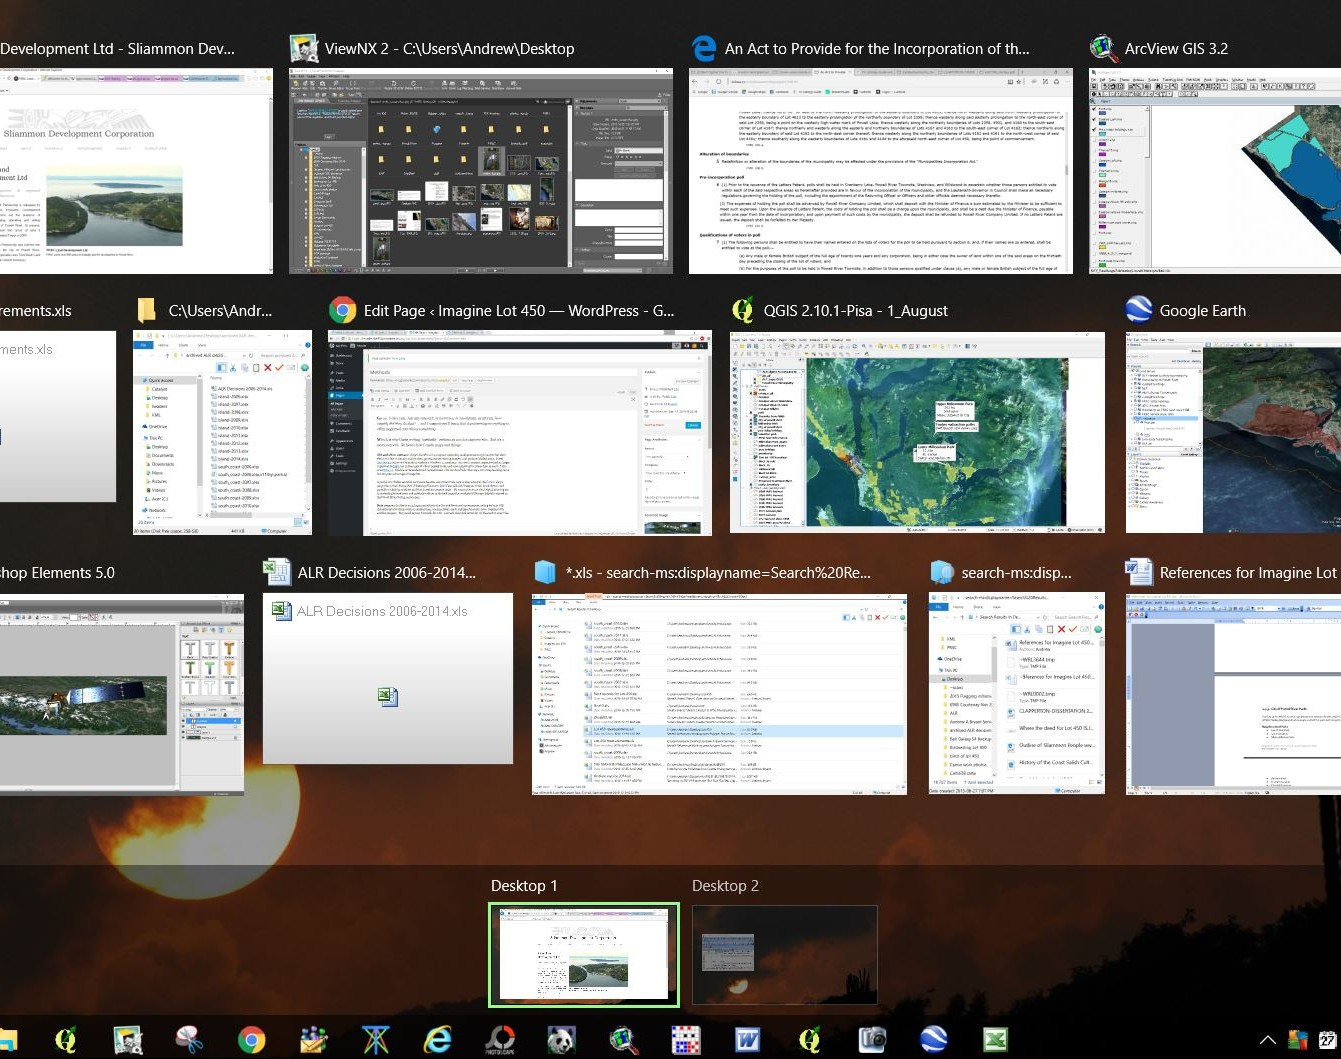 What my desktop looks like on a typical day...